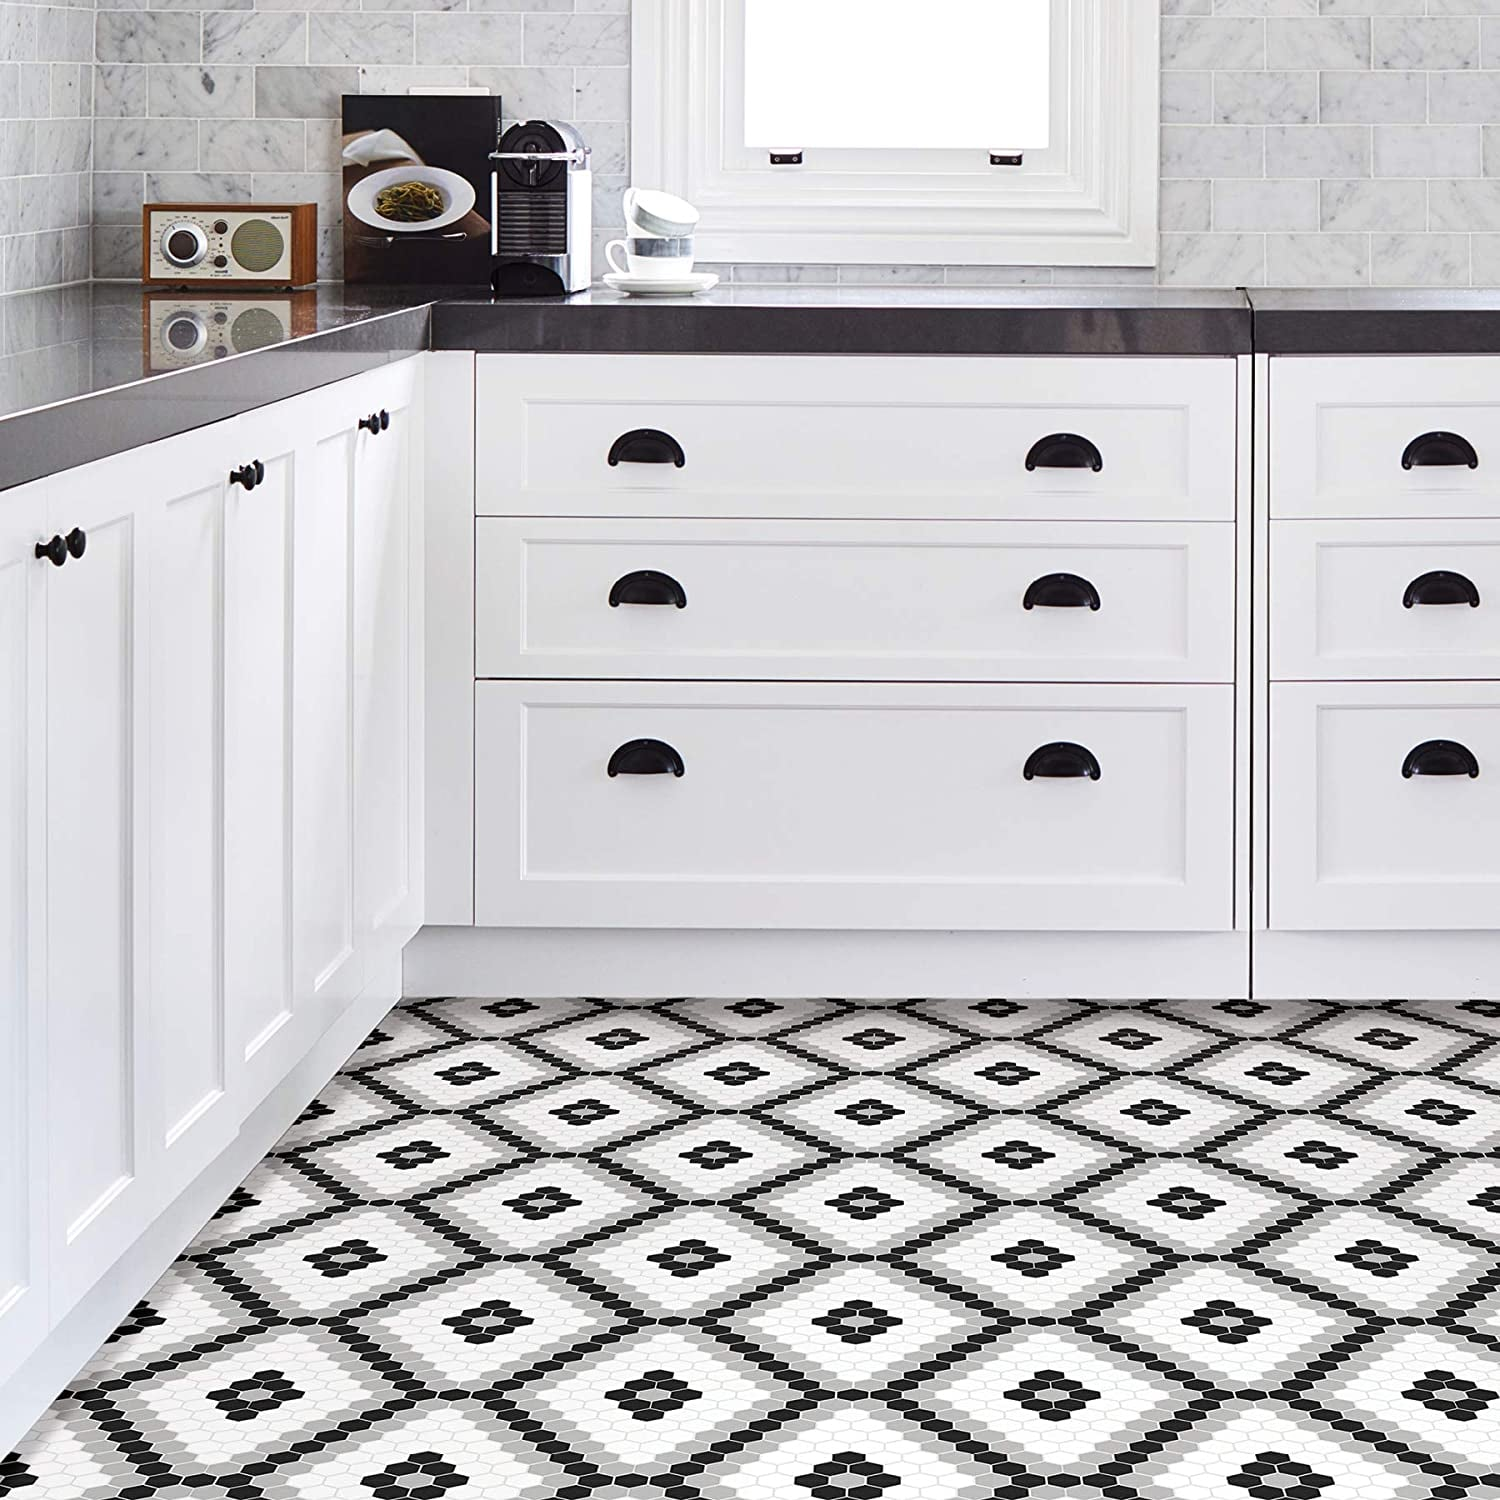 - Upgrade Your Apartment Using Peel And Stick Floor Tiles POPSUGAR